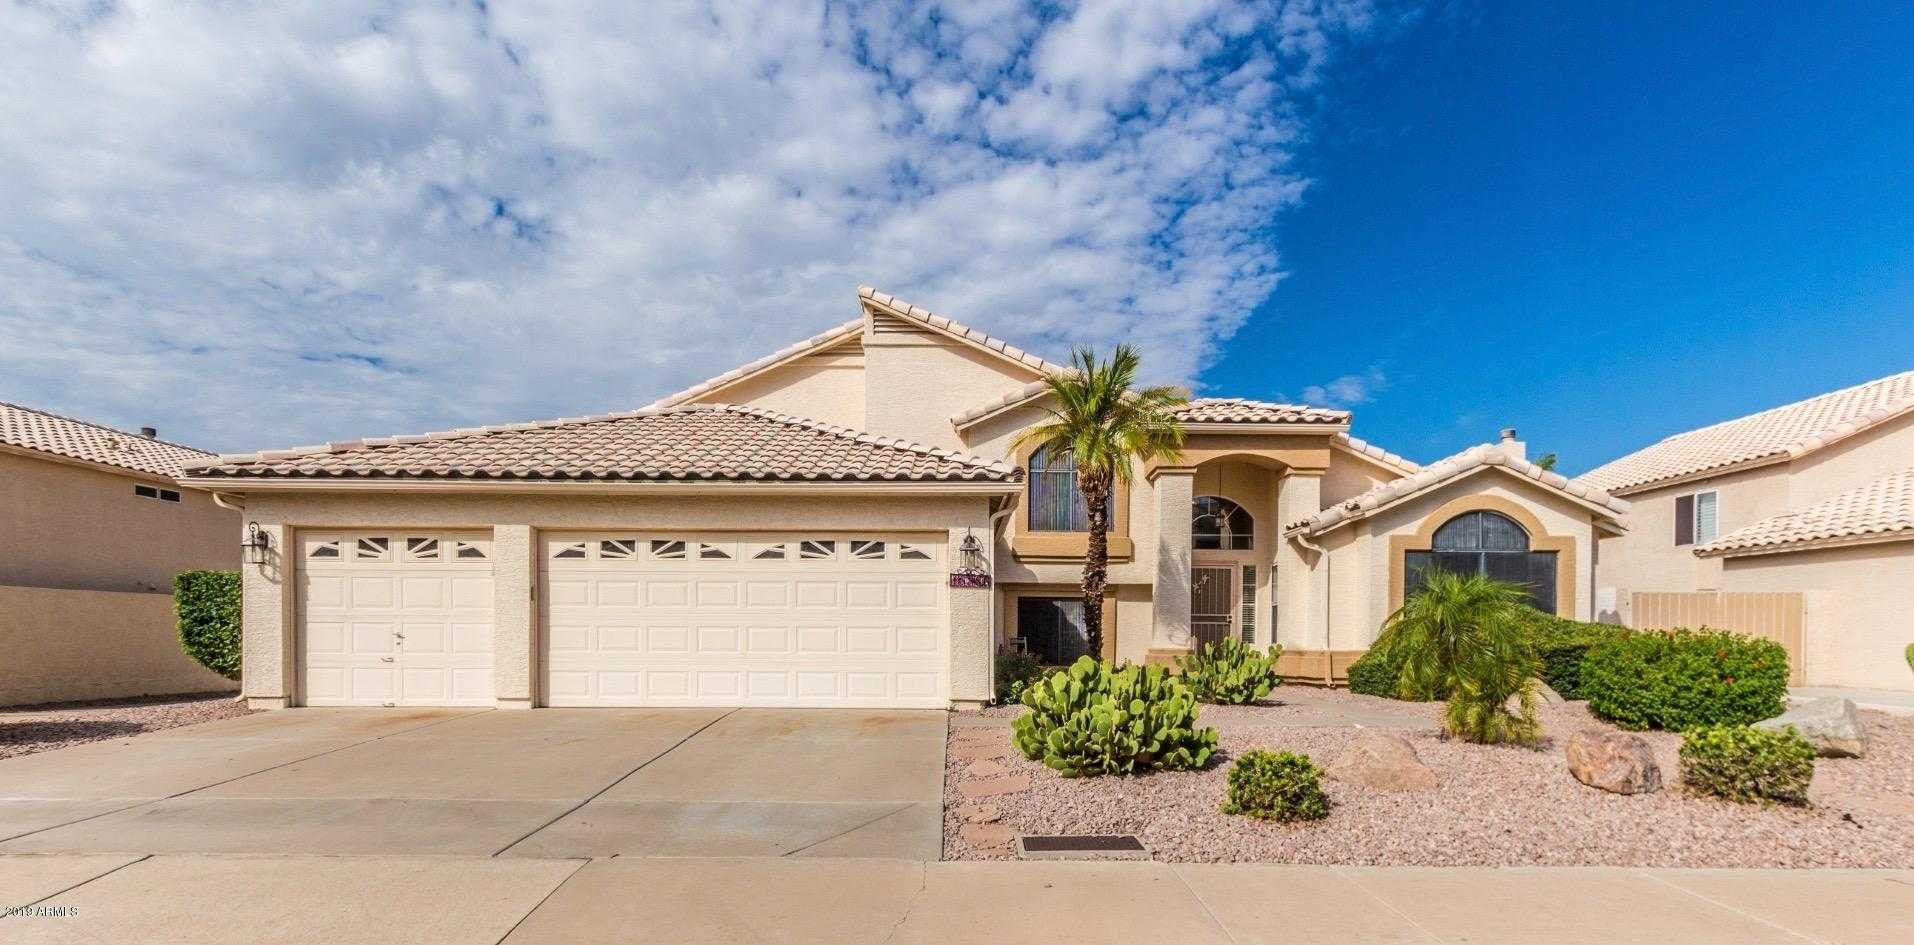 $475,000 - 5Br/3Ba - Home for Sale in Arrowhead Oasis Amd Lt 1-88 Tr A Drainage Easmt, Glendale